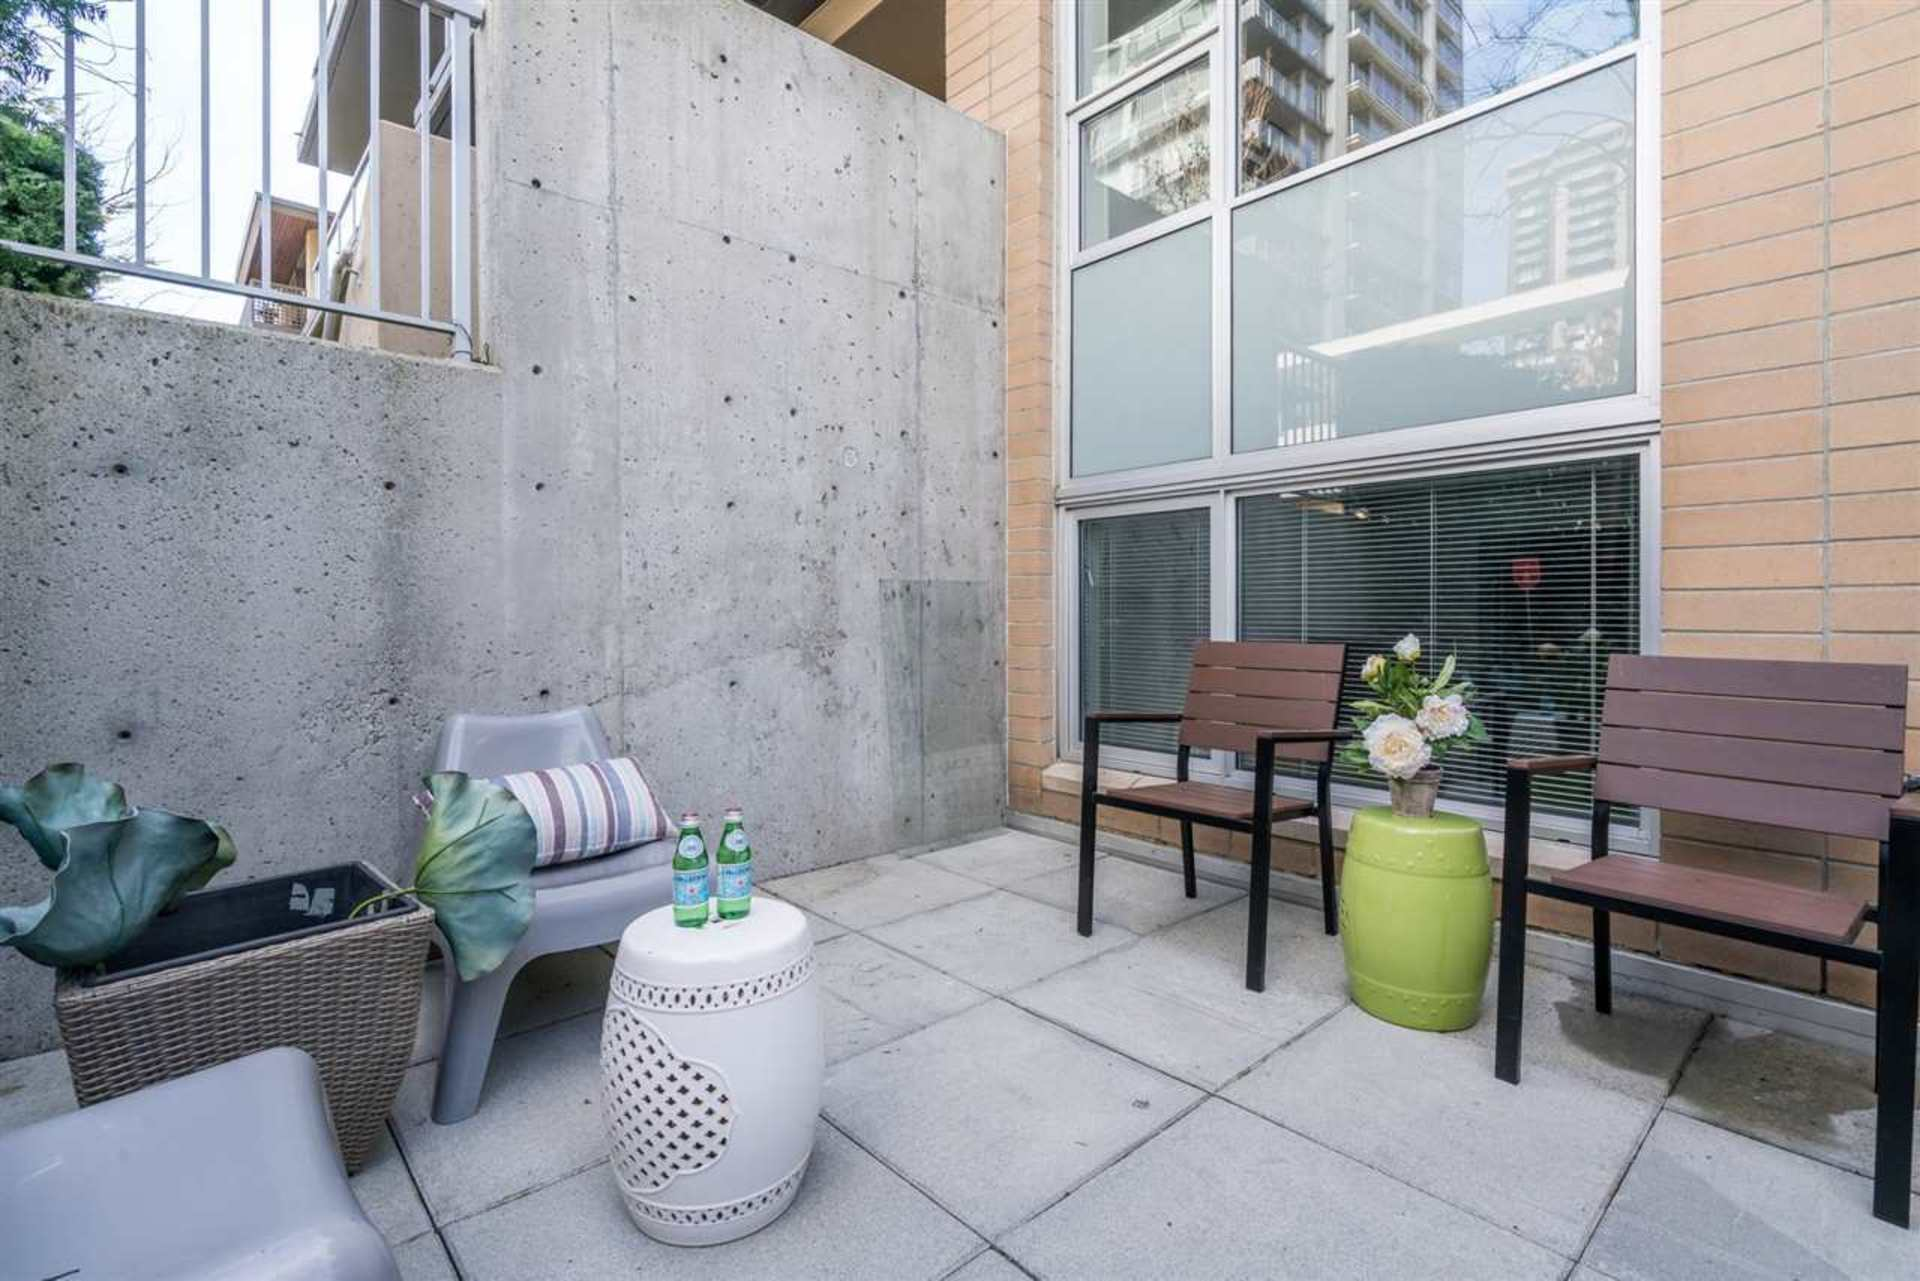 1288-chesterfield-avenue-central-lonsdale-north-vancouver-16-1 at TH3 - 1288 Chesterfield Avenue, Central Lonsdale, North Vancouver